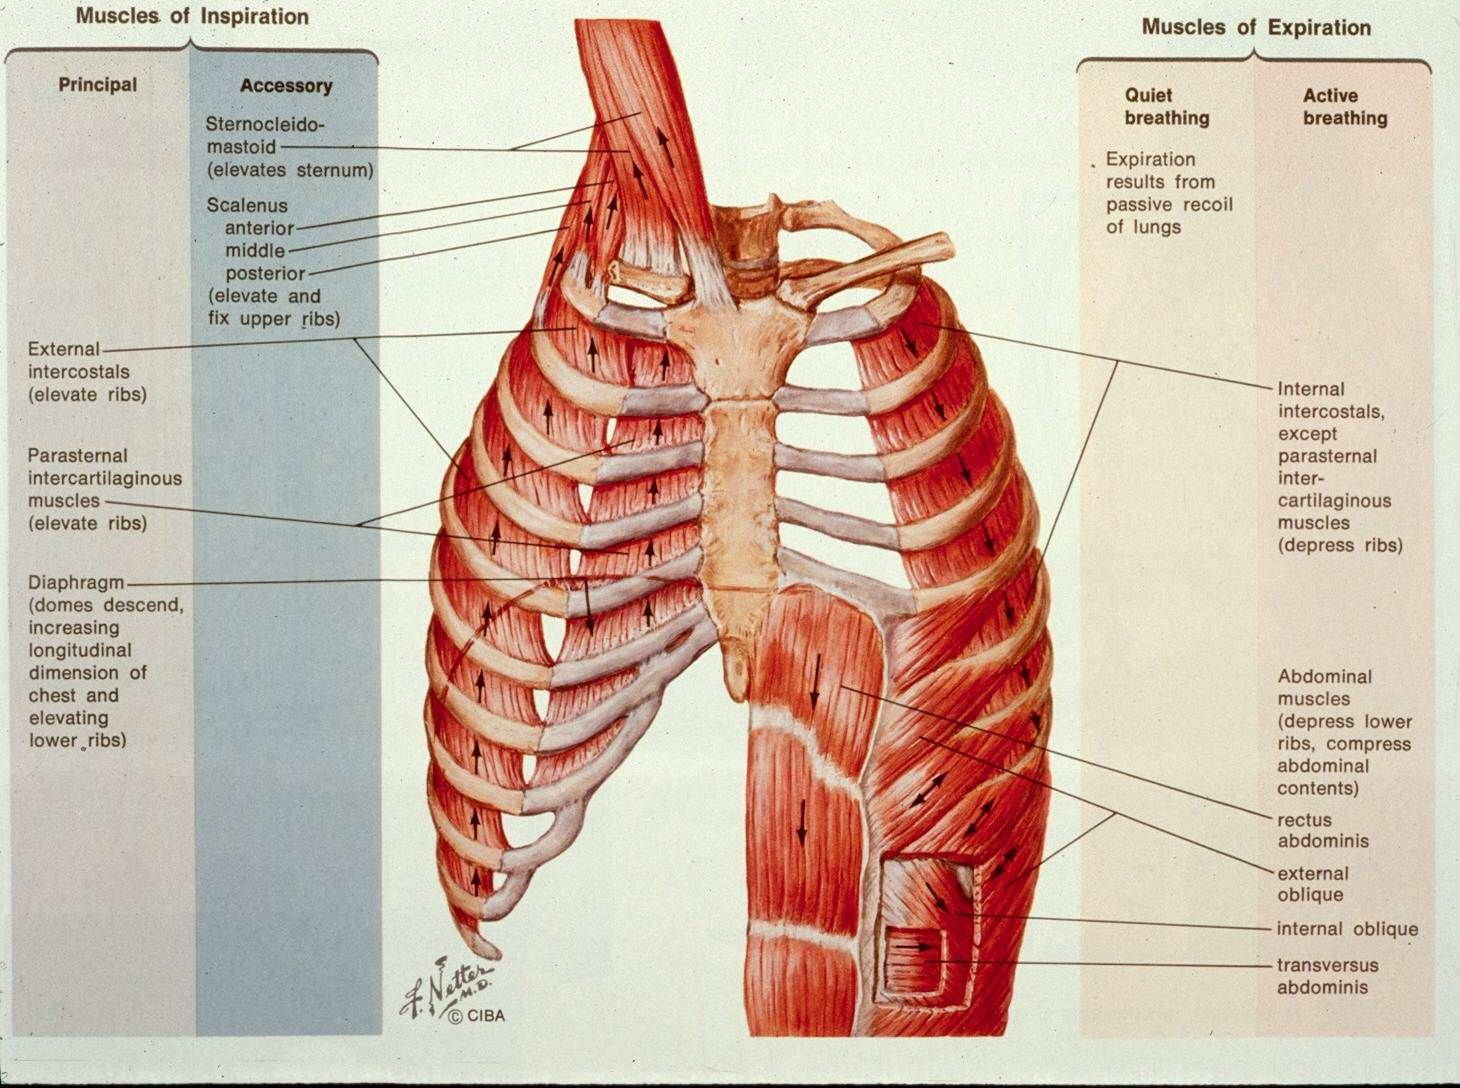 lung anatomy netter - Google Search | Anatomy | Pinterest | Lungs ...